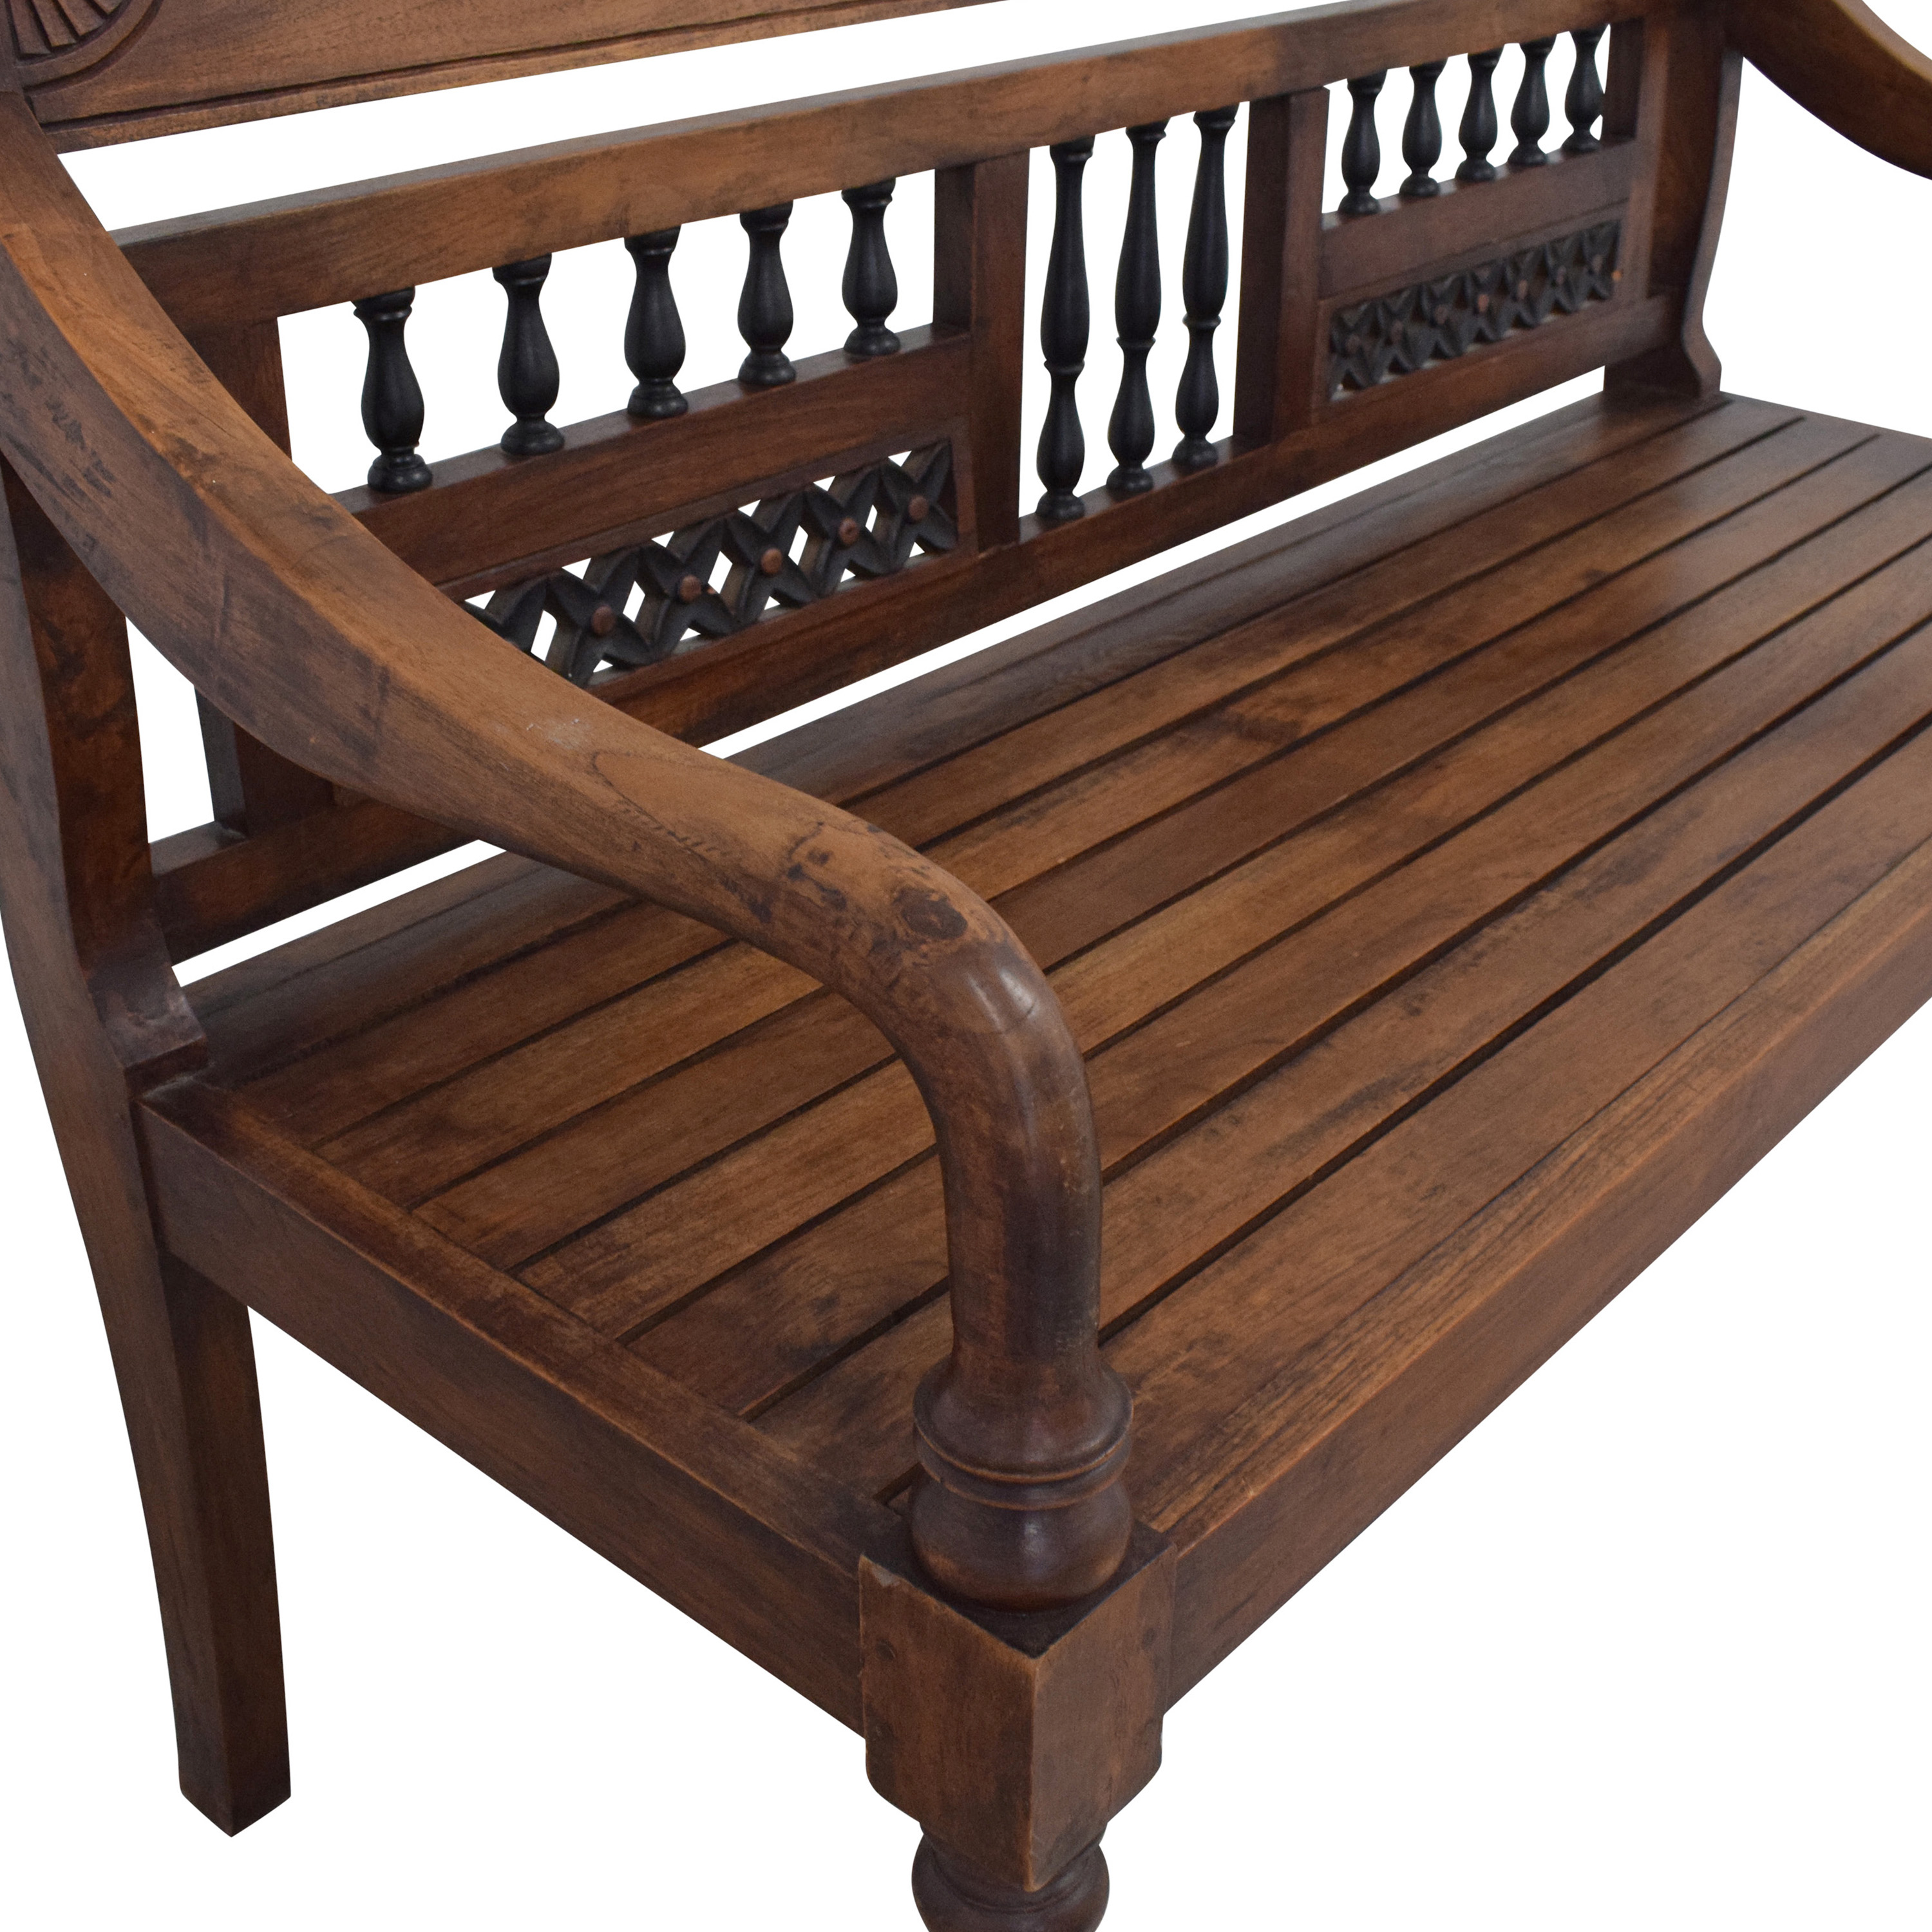 Vintage Wooden Bench dimensions